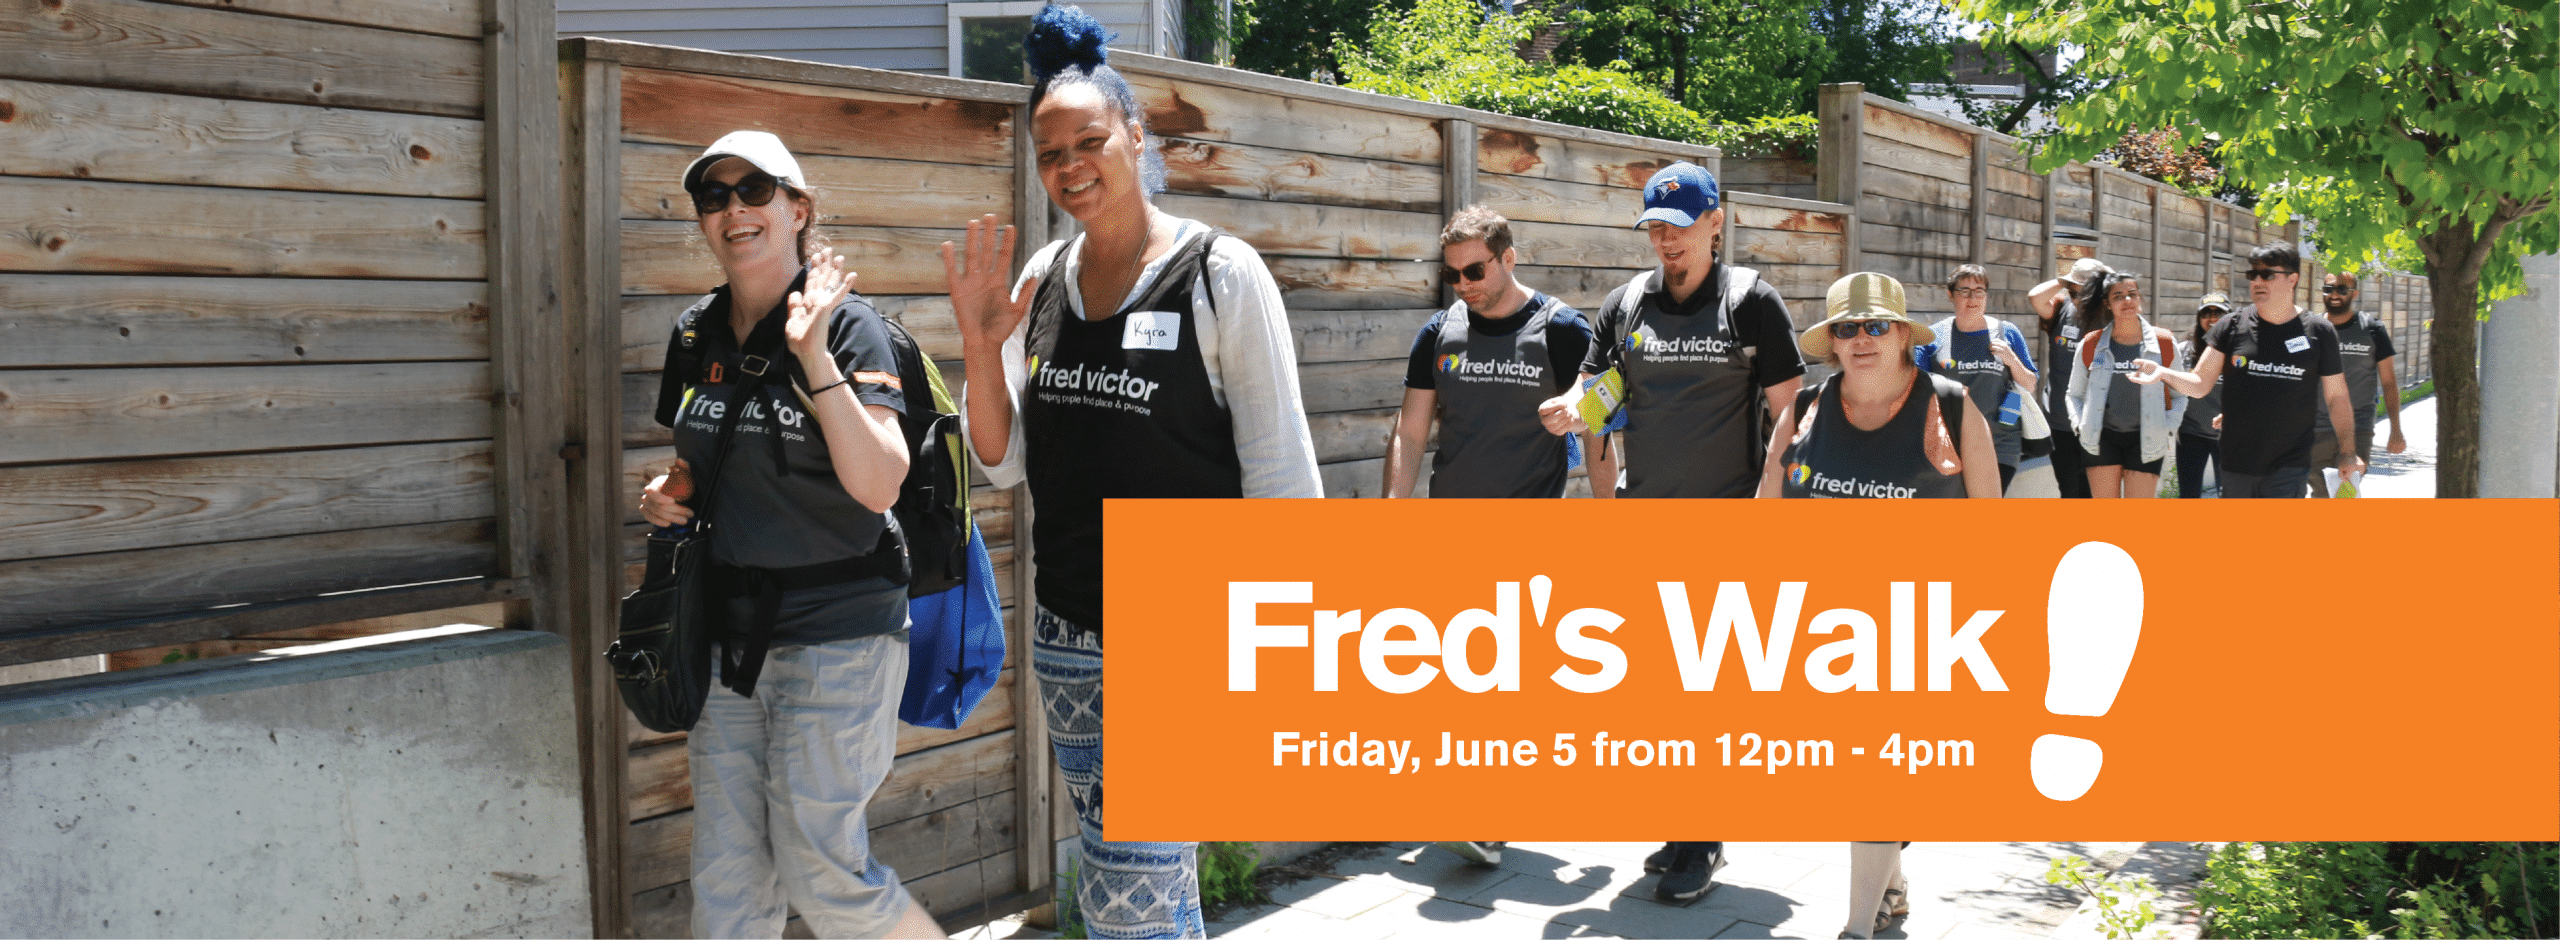 Freds Walk 2020 Register Today